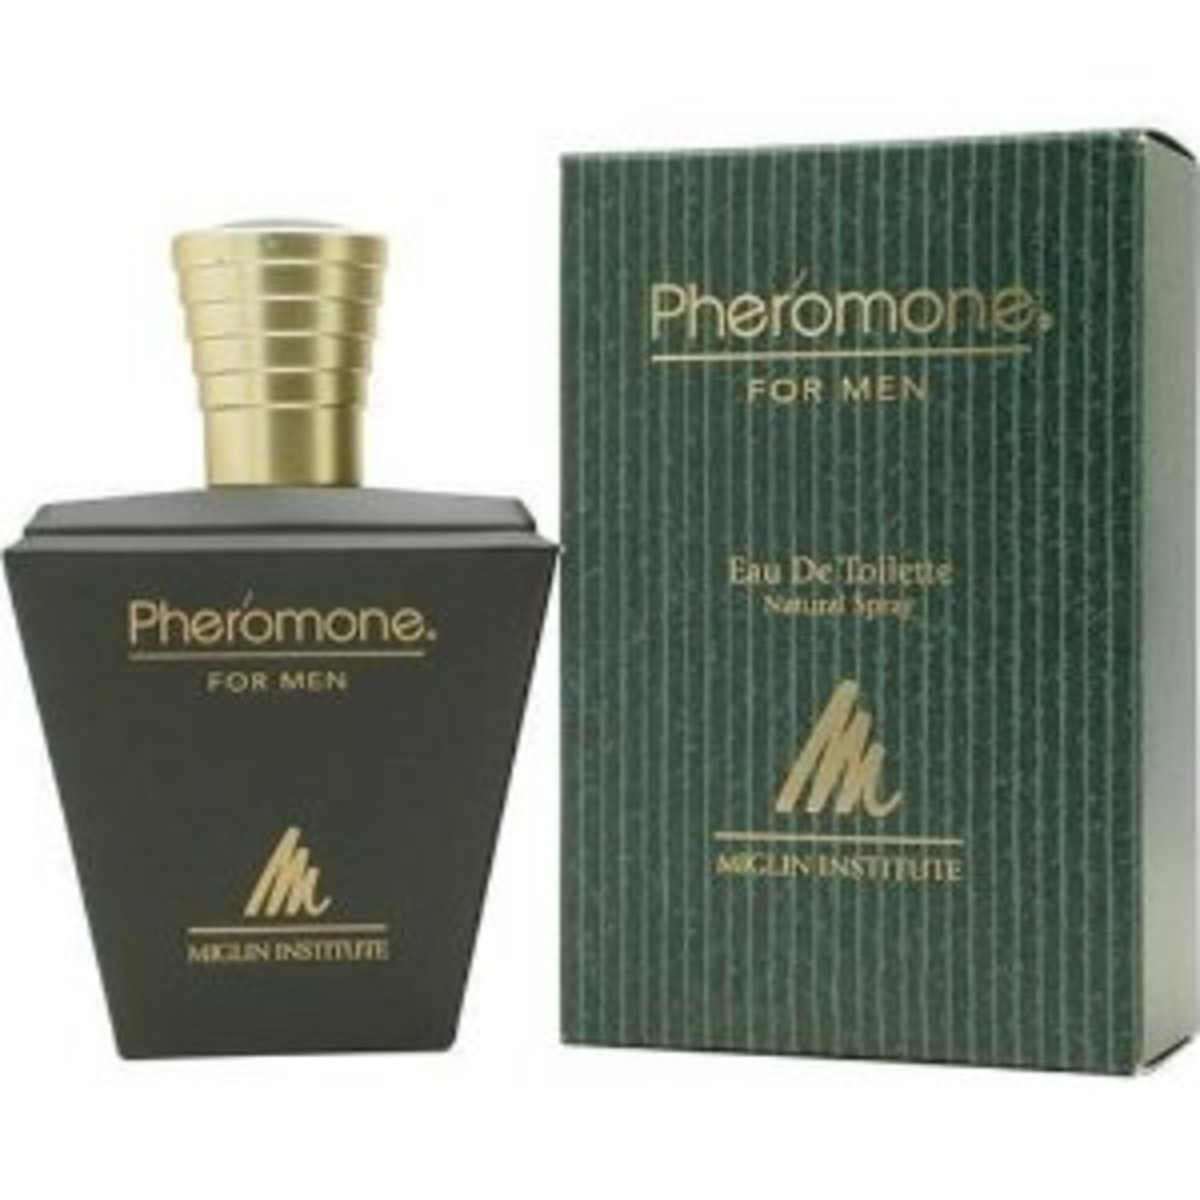 Top 10 Pheromone Colognes for Men to Attract Women : Best Pheromones List (2016)